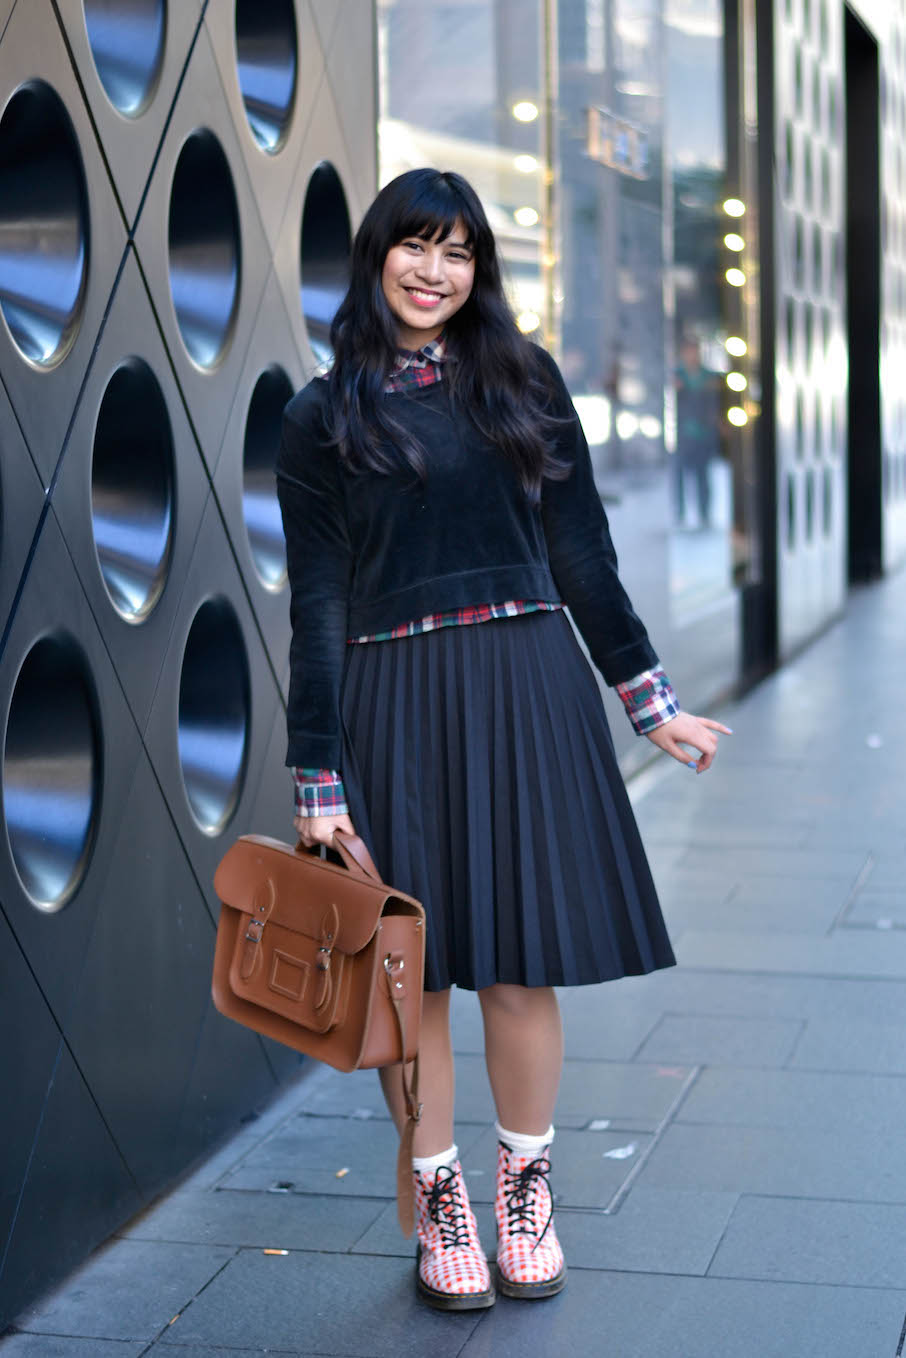 """NSW:  Renee Marie Lequin, student, Castlereagh St, Sydney. """"My style depends on how many hours of sleep I get."""""""